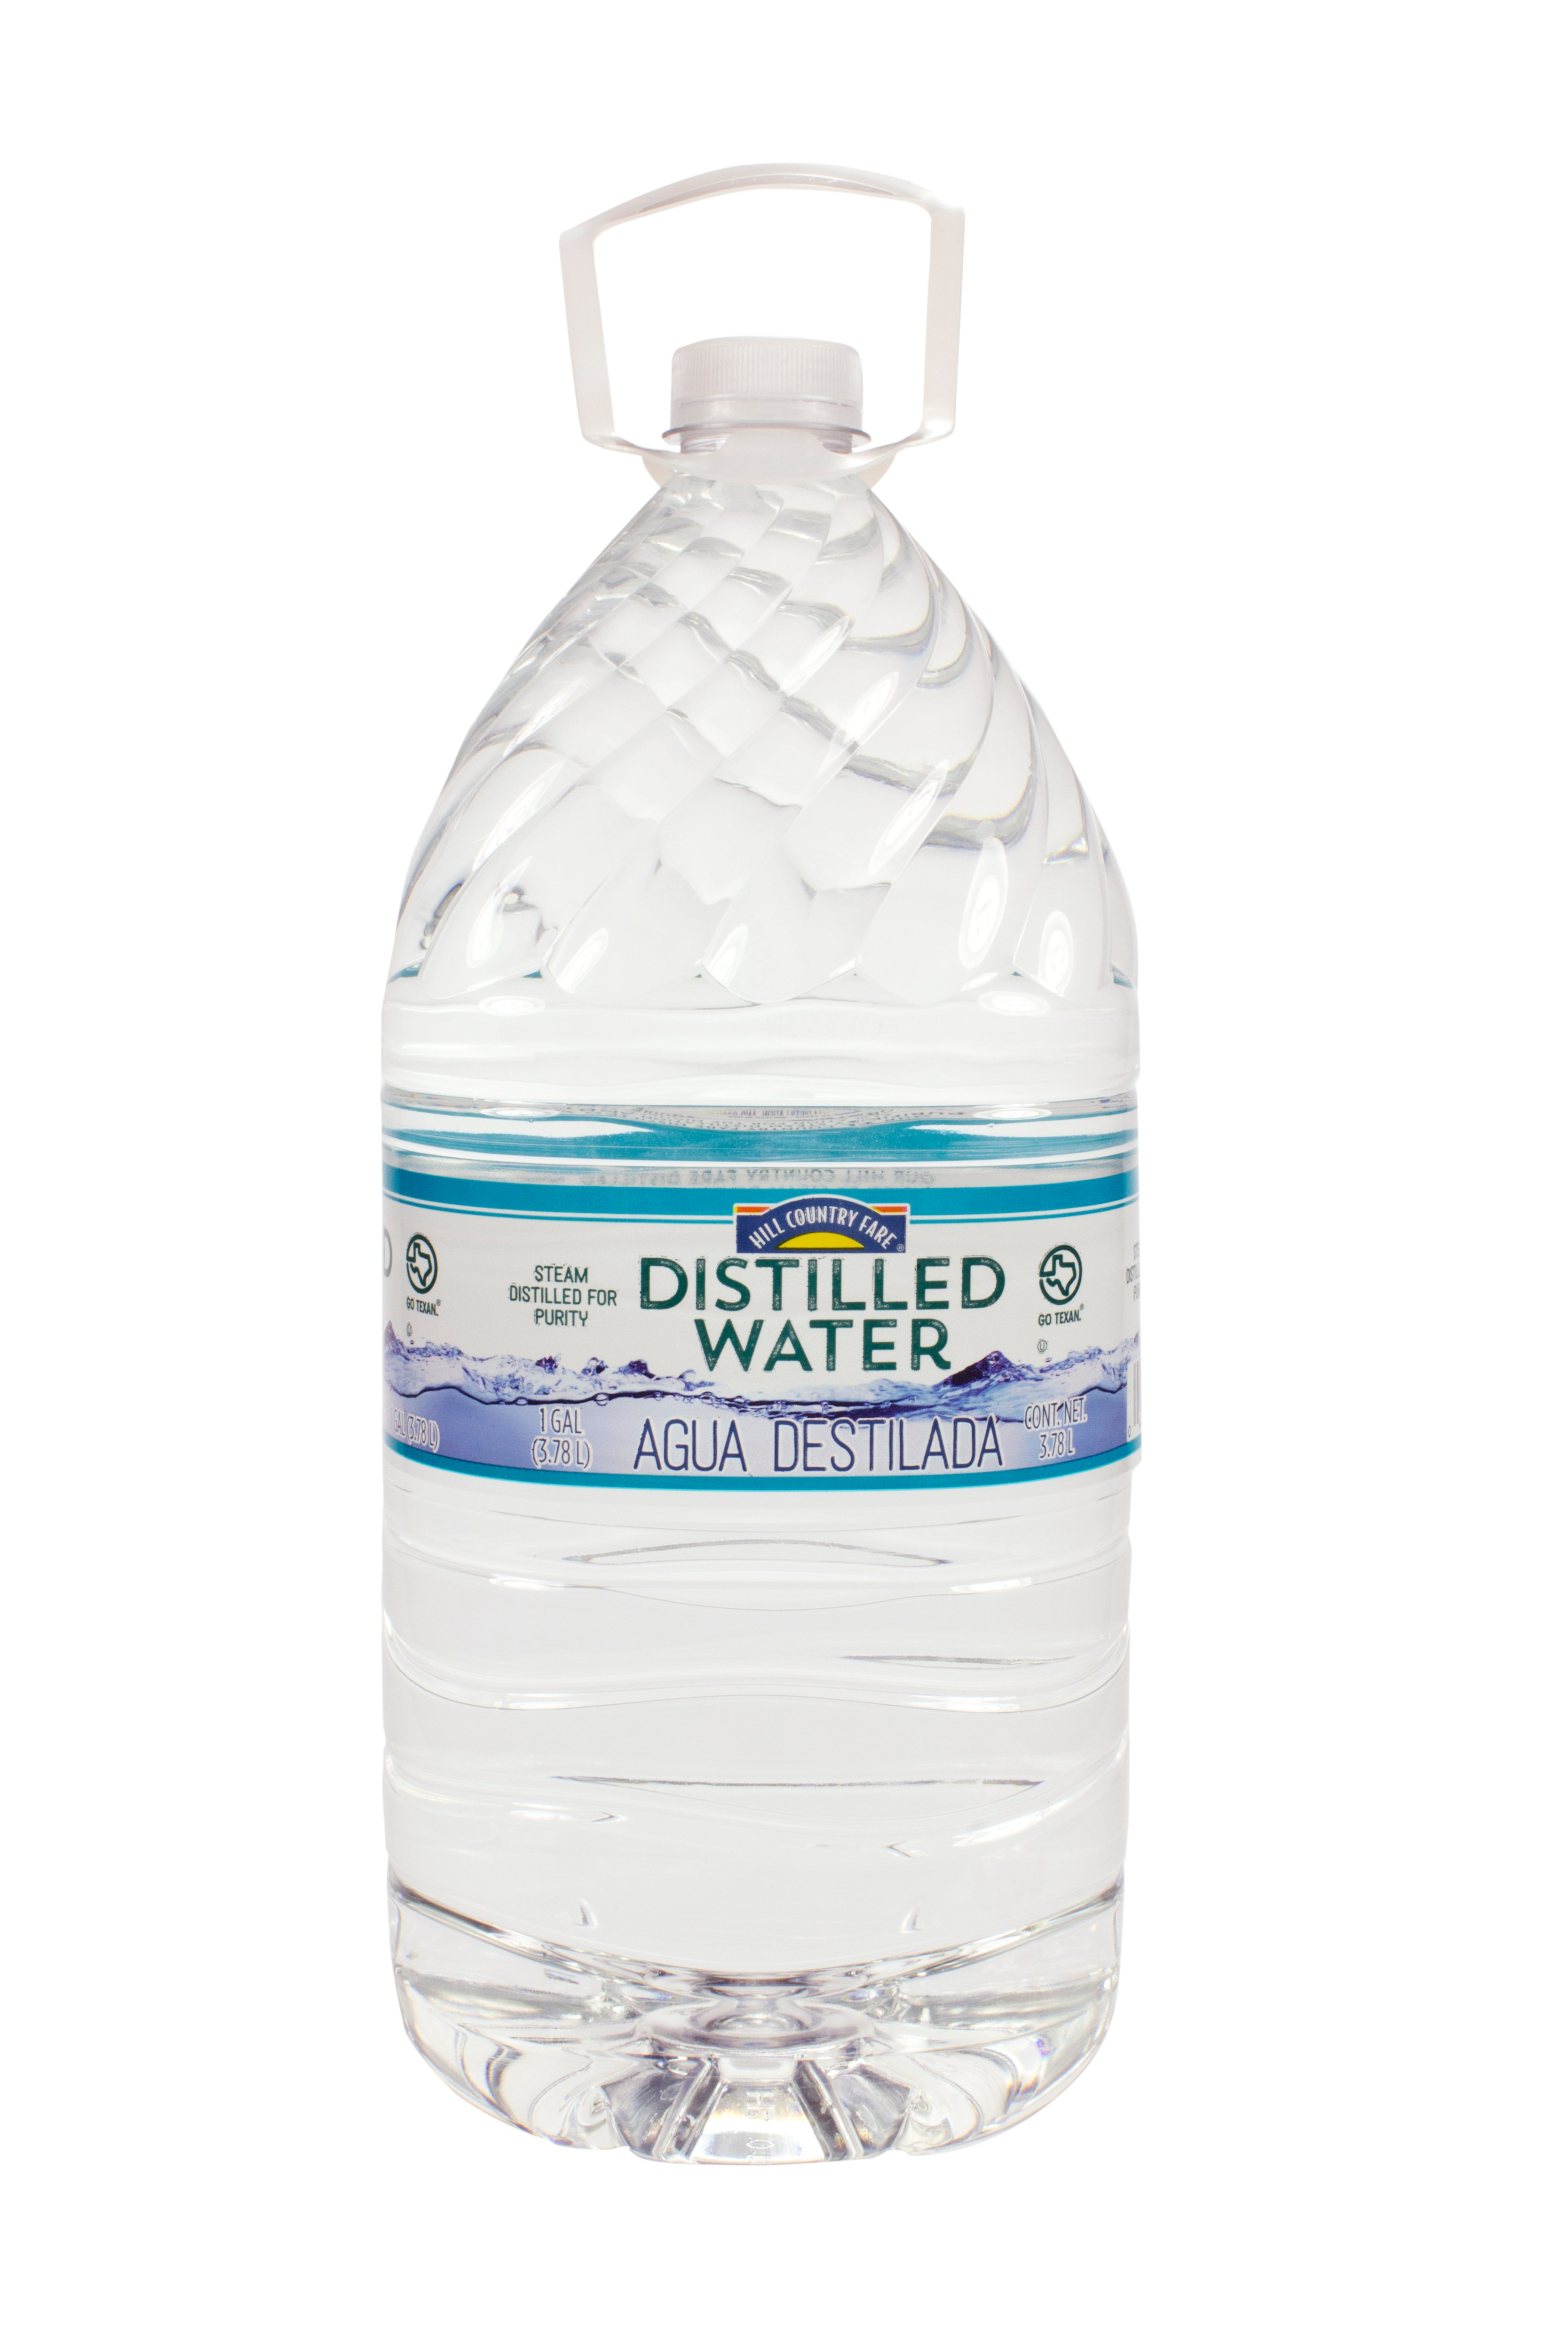 What is distilled water, and what is it for? 78